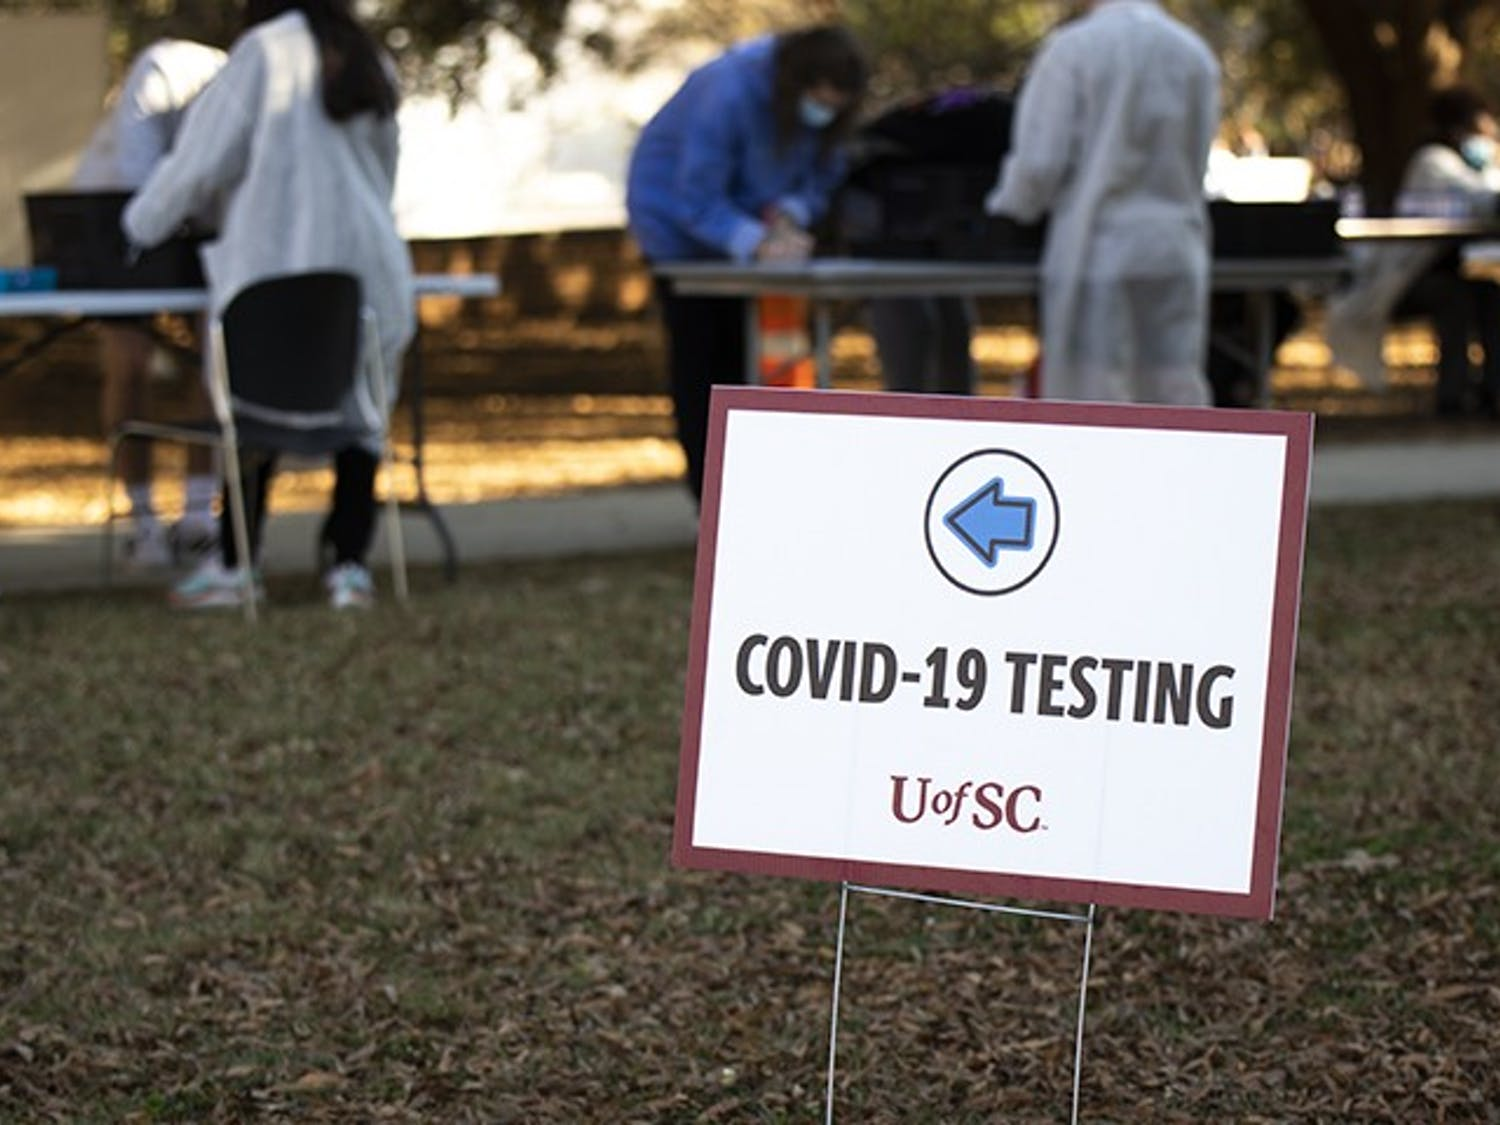 A sign marks the check-in area for COVID-19 testing on Davis Field. The university has had over 2,800 students test positive for the virus since Aug. 1.